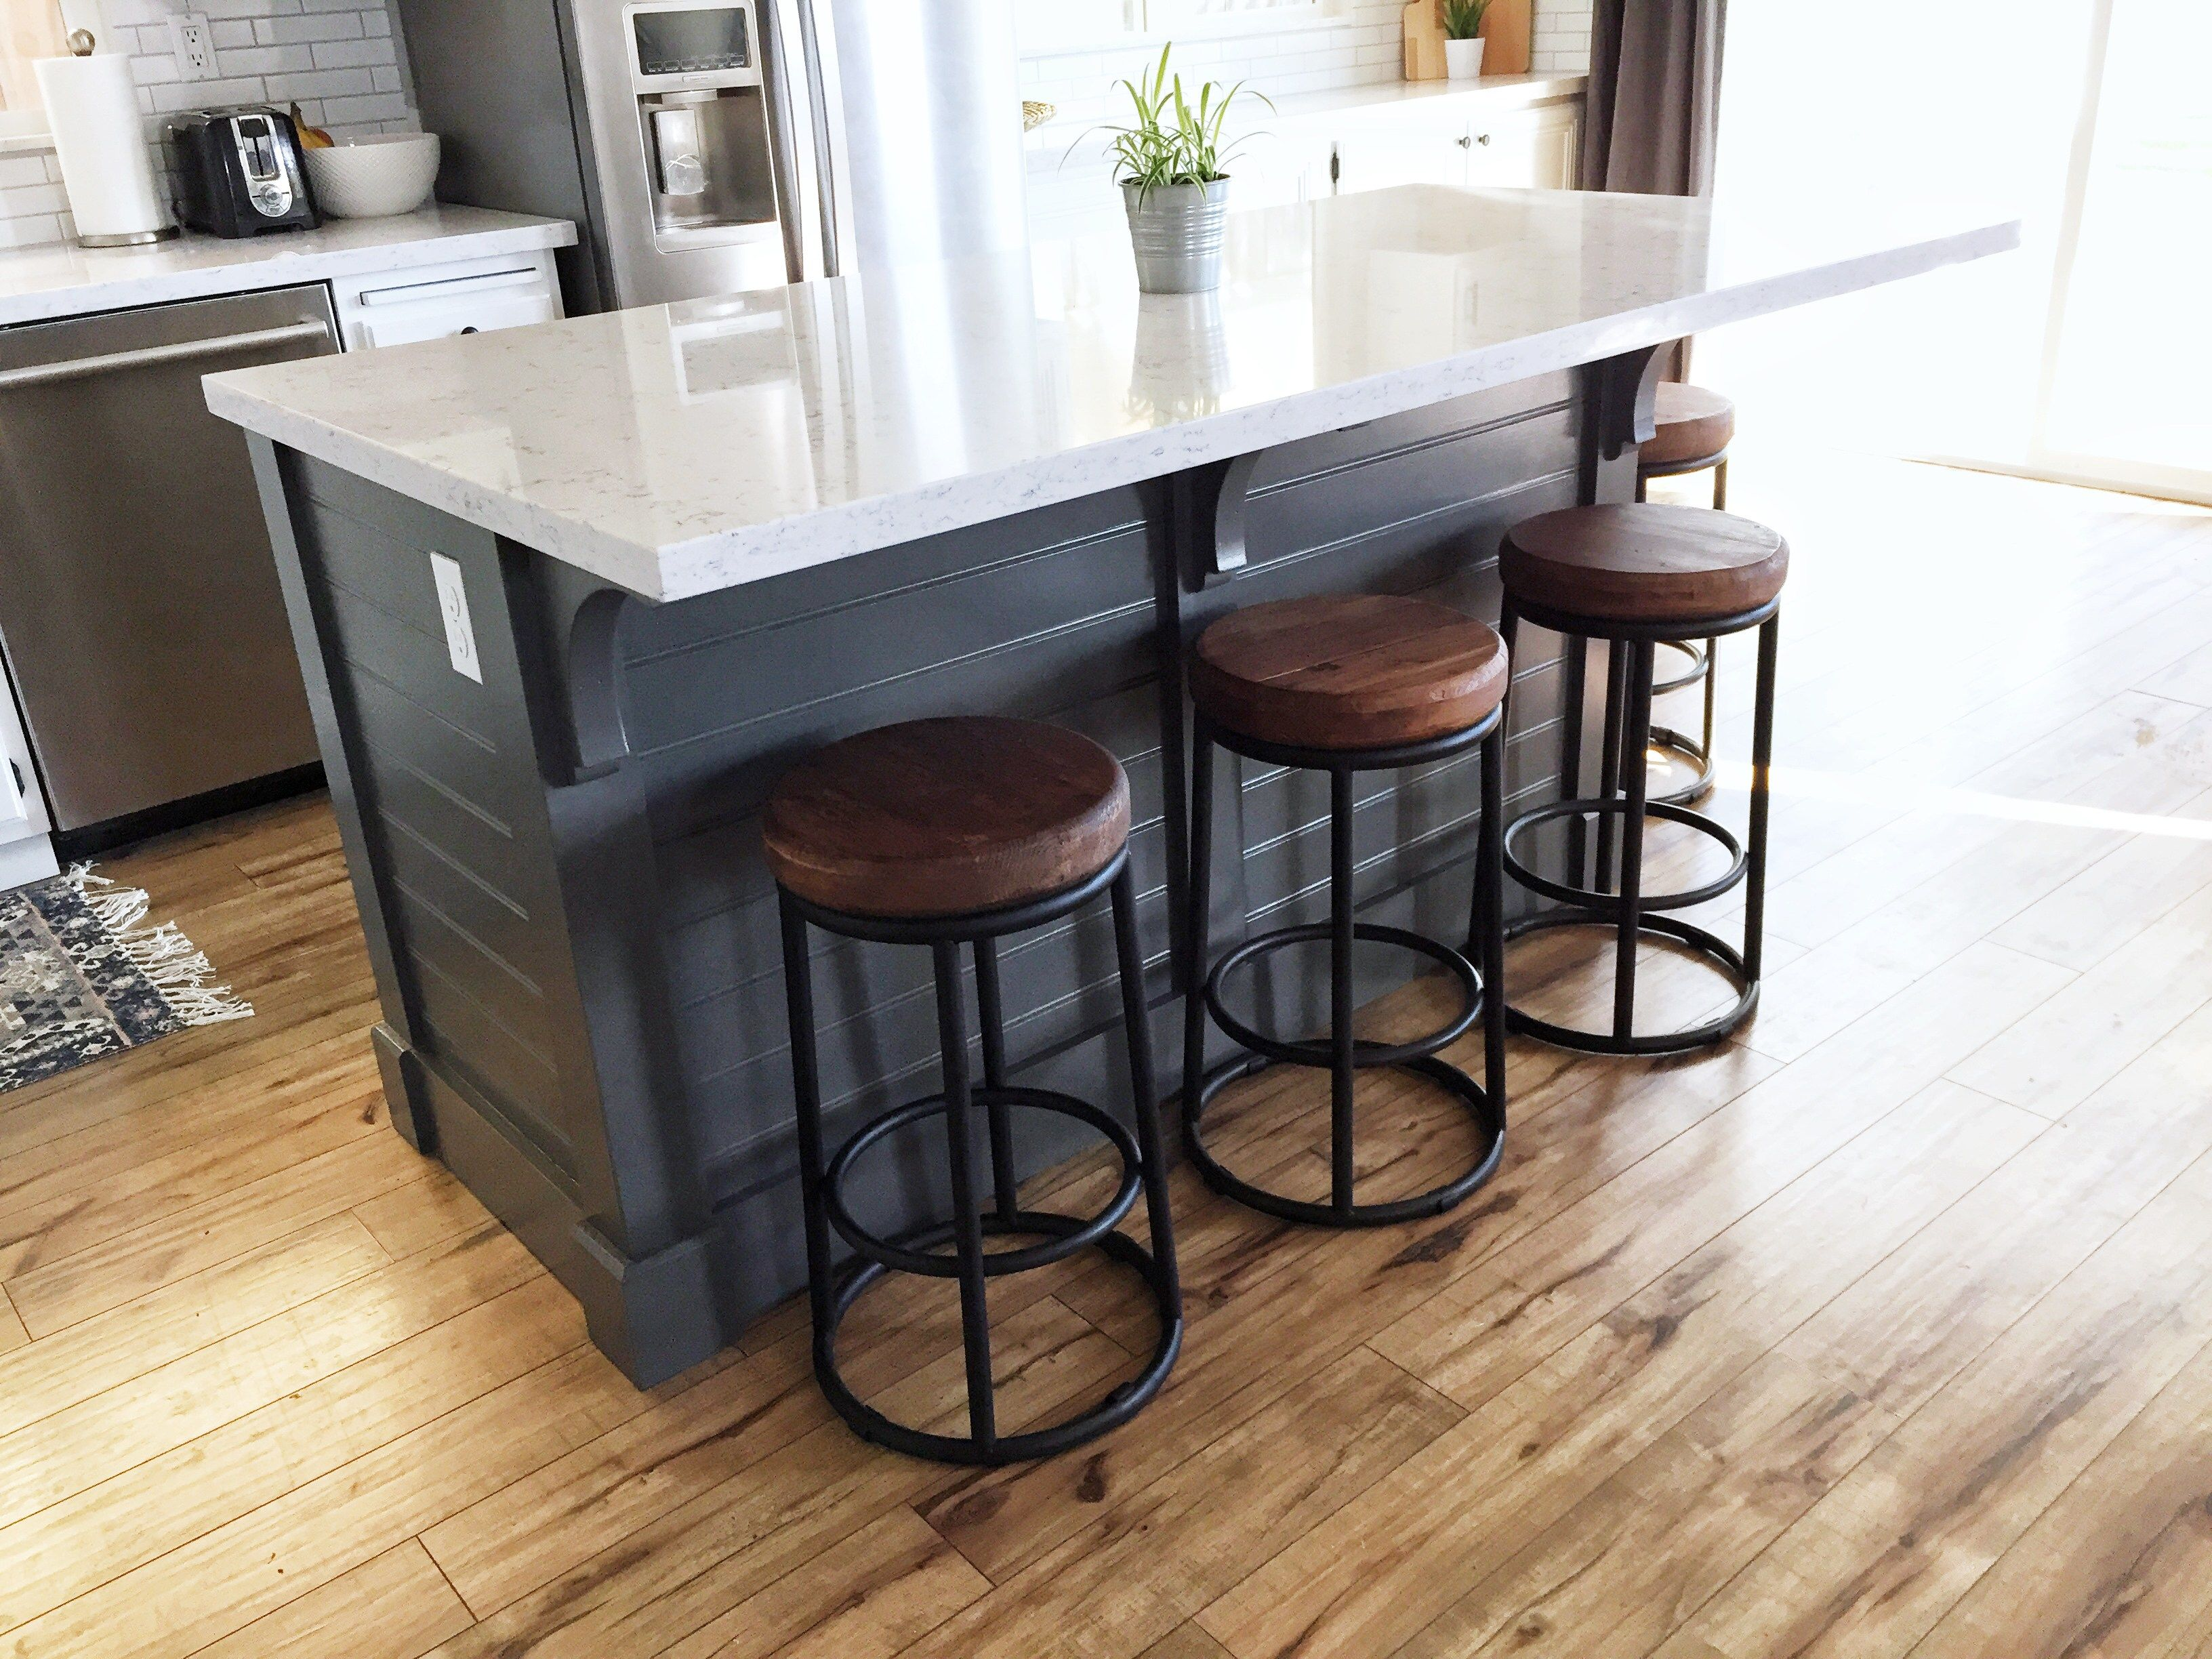 Delicieux Diy Kitchen Island